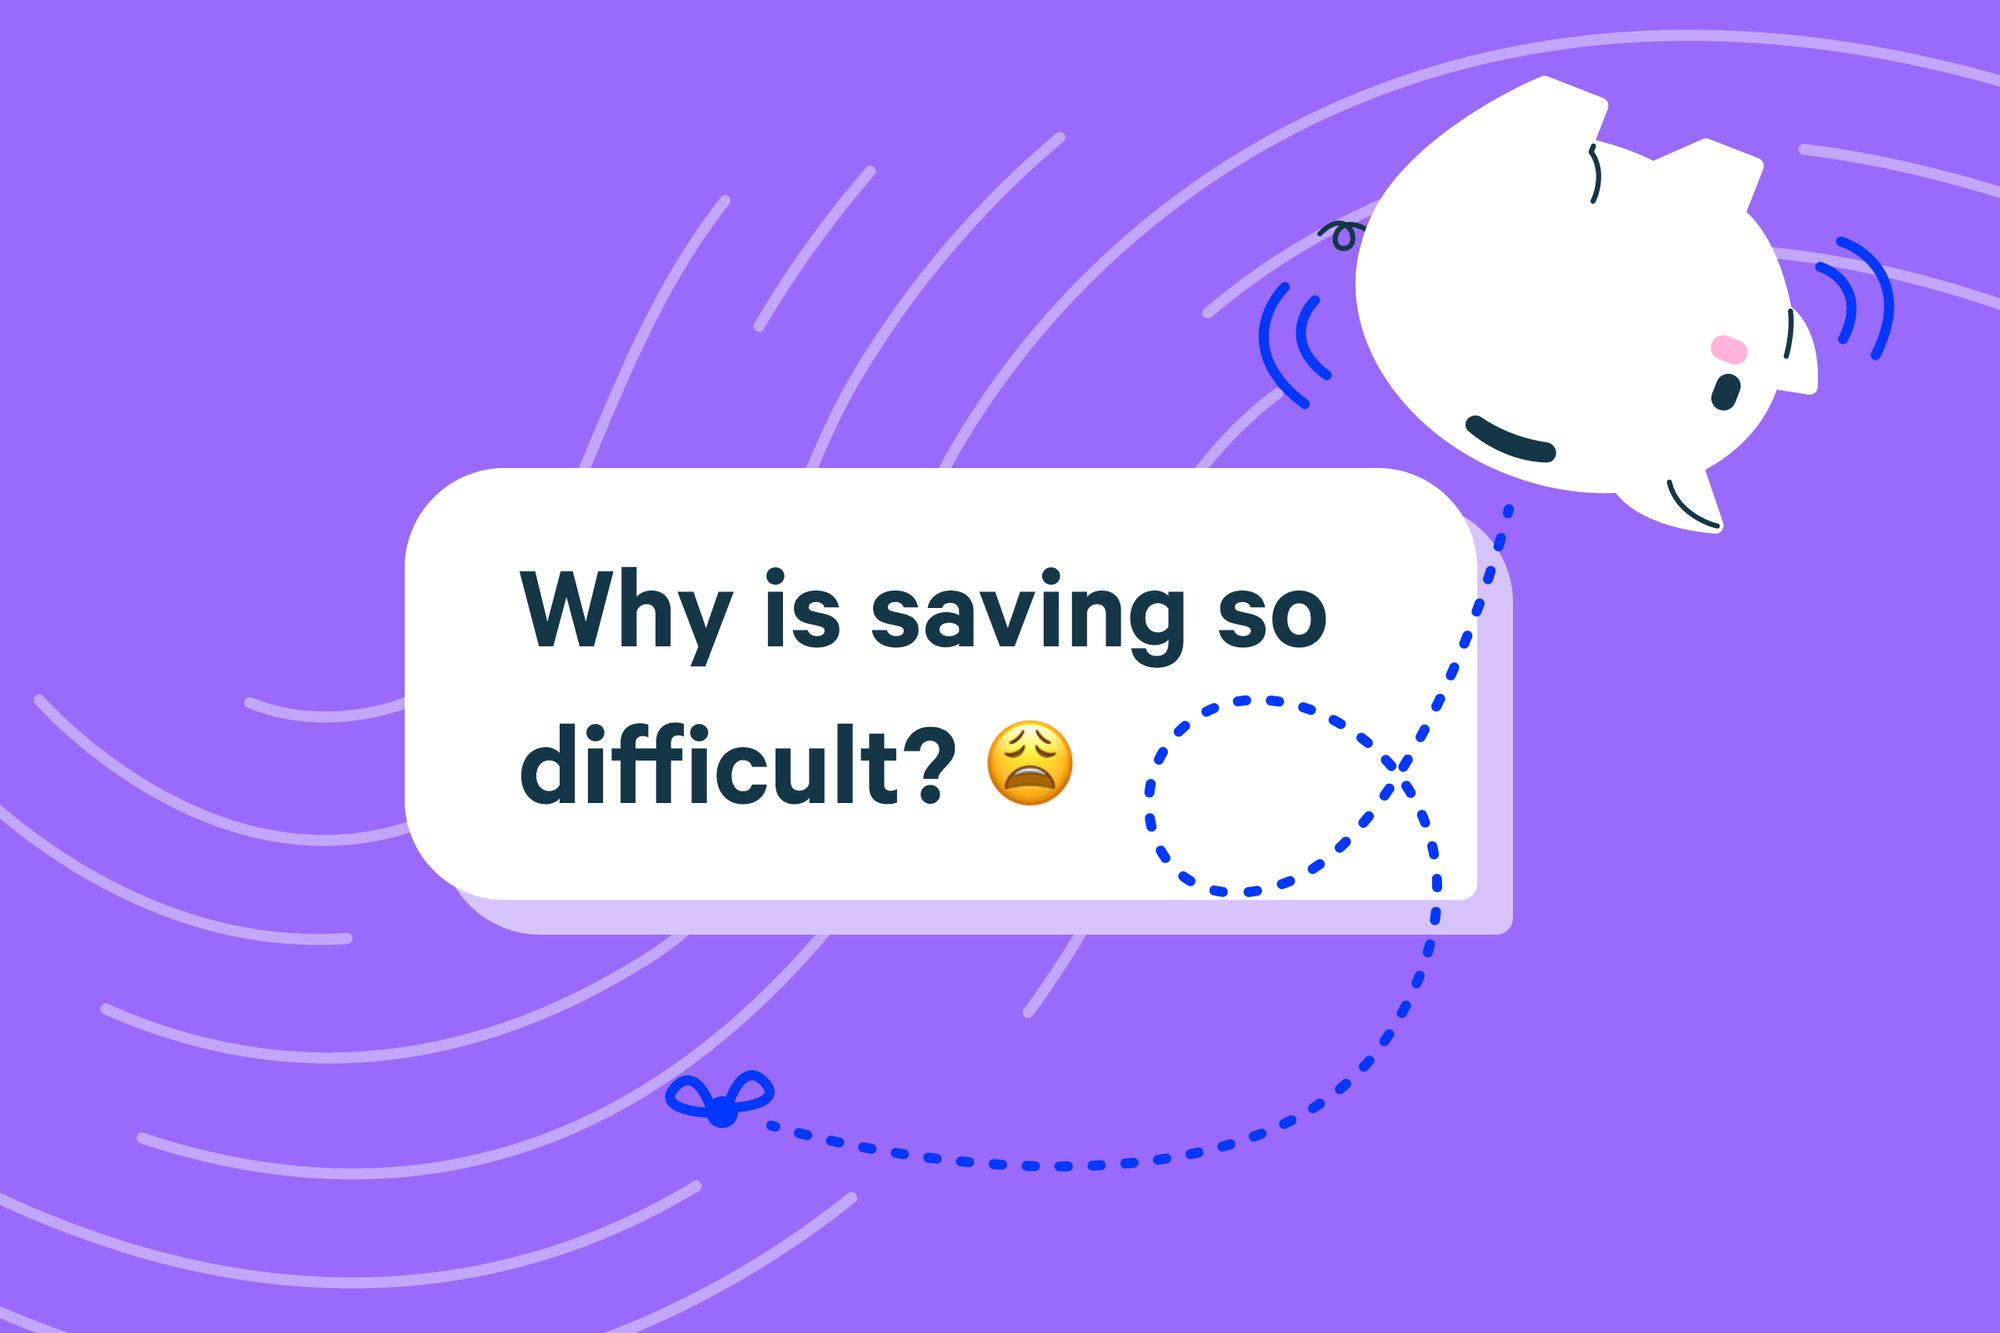 #AskPlum: Why Is Saving so Difficult?